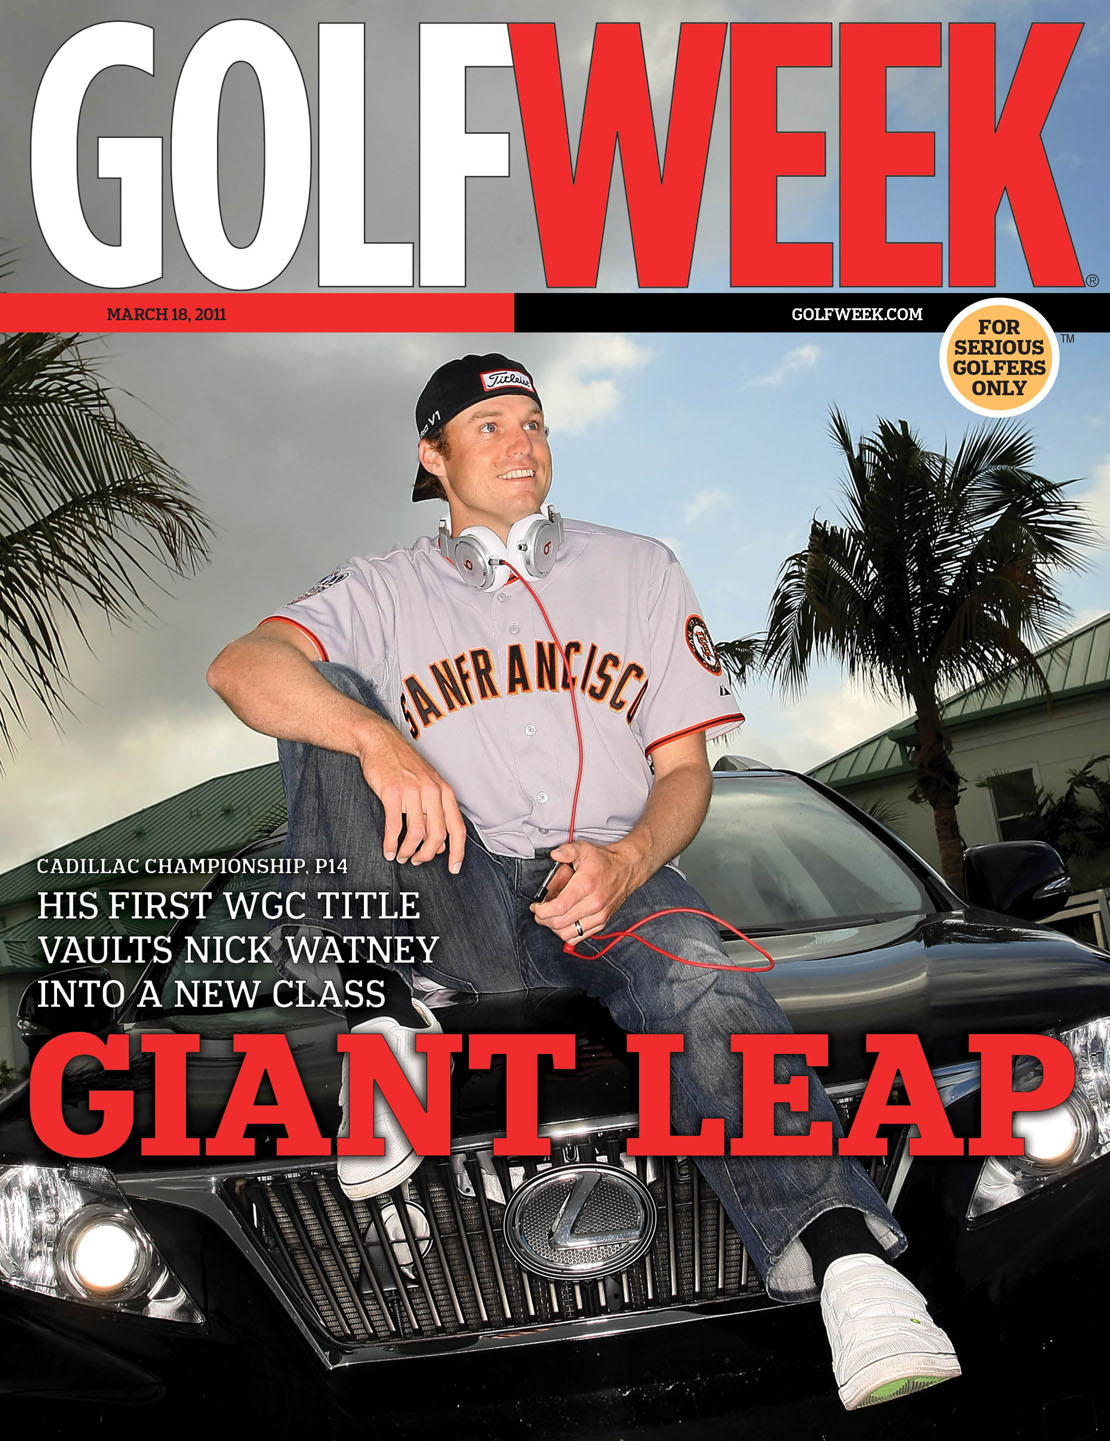 March 18, 2011 – Profile of Nick Watney, winner of the WGC-Cadillac Championship